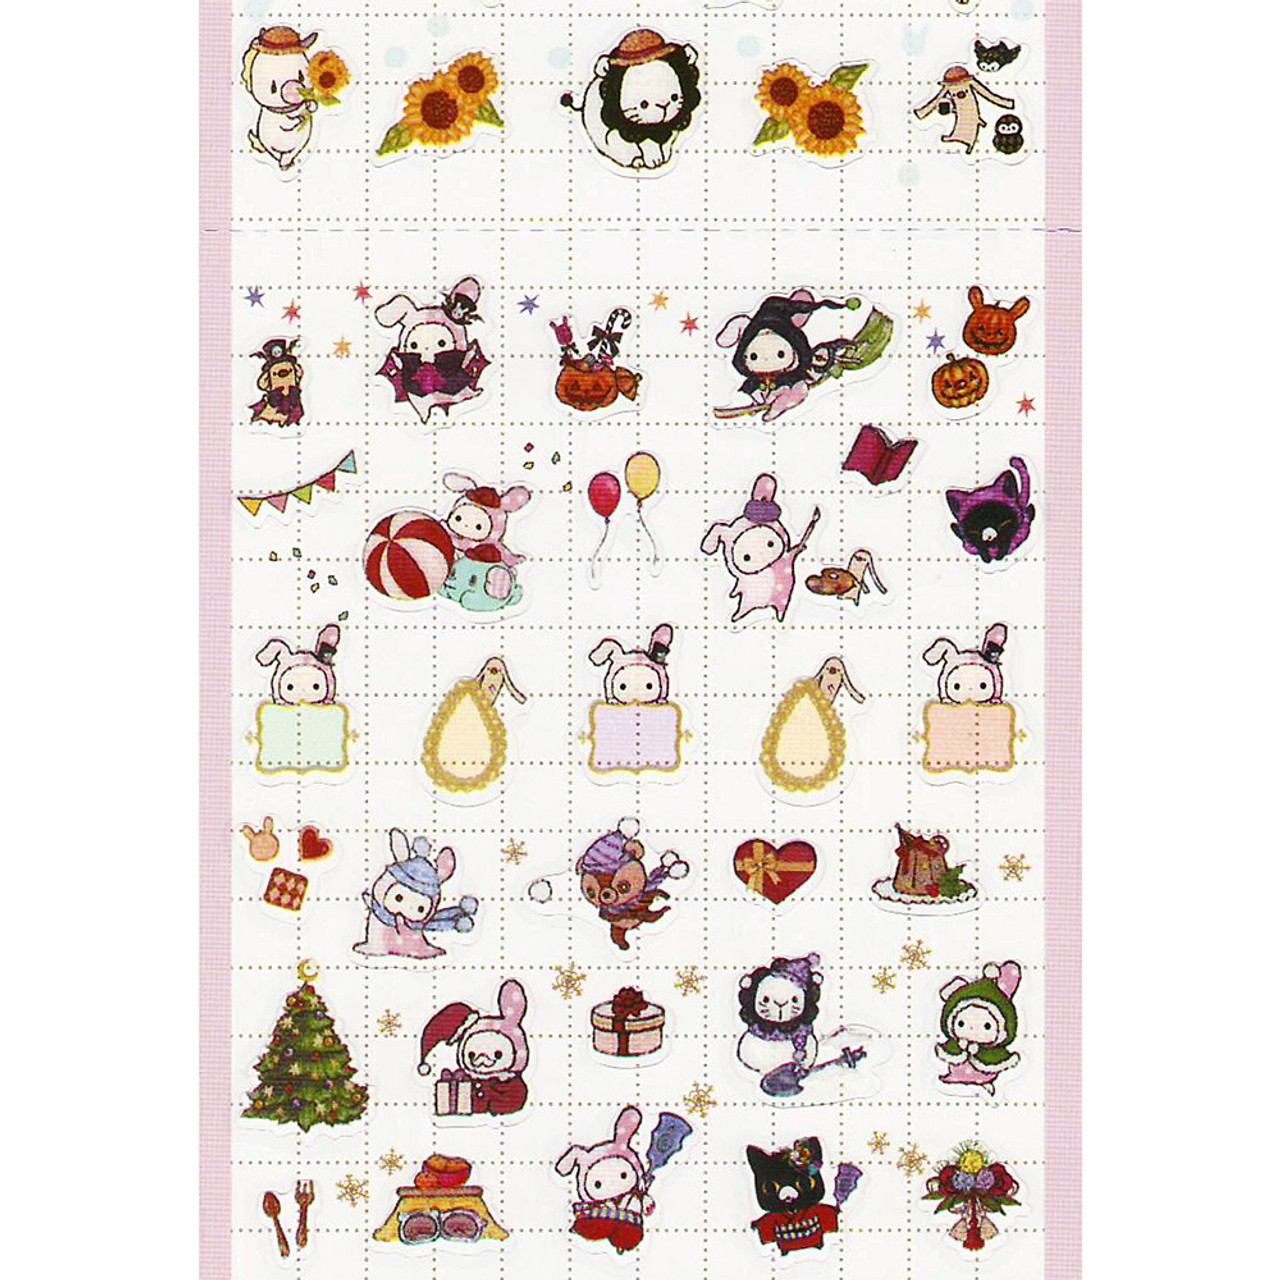 San-x Sentimental Circus Shappo Bunny Characters Events Schedule Sticker SE30605 ( Bottom View )